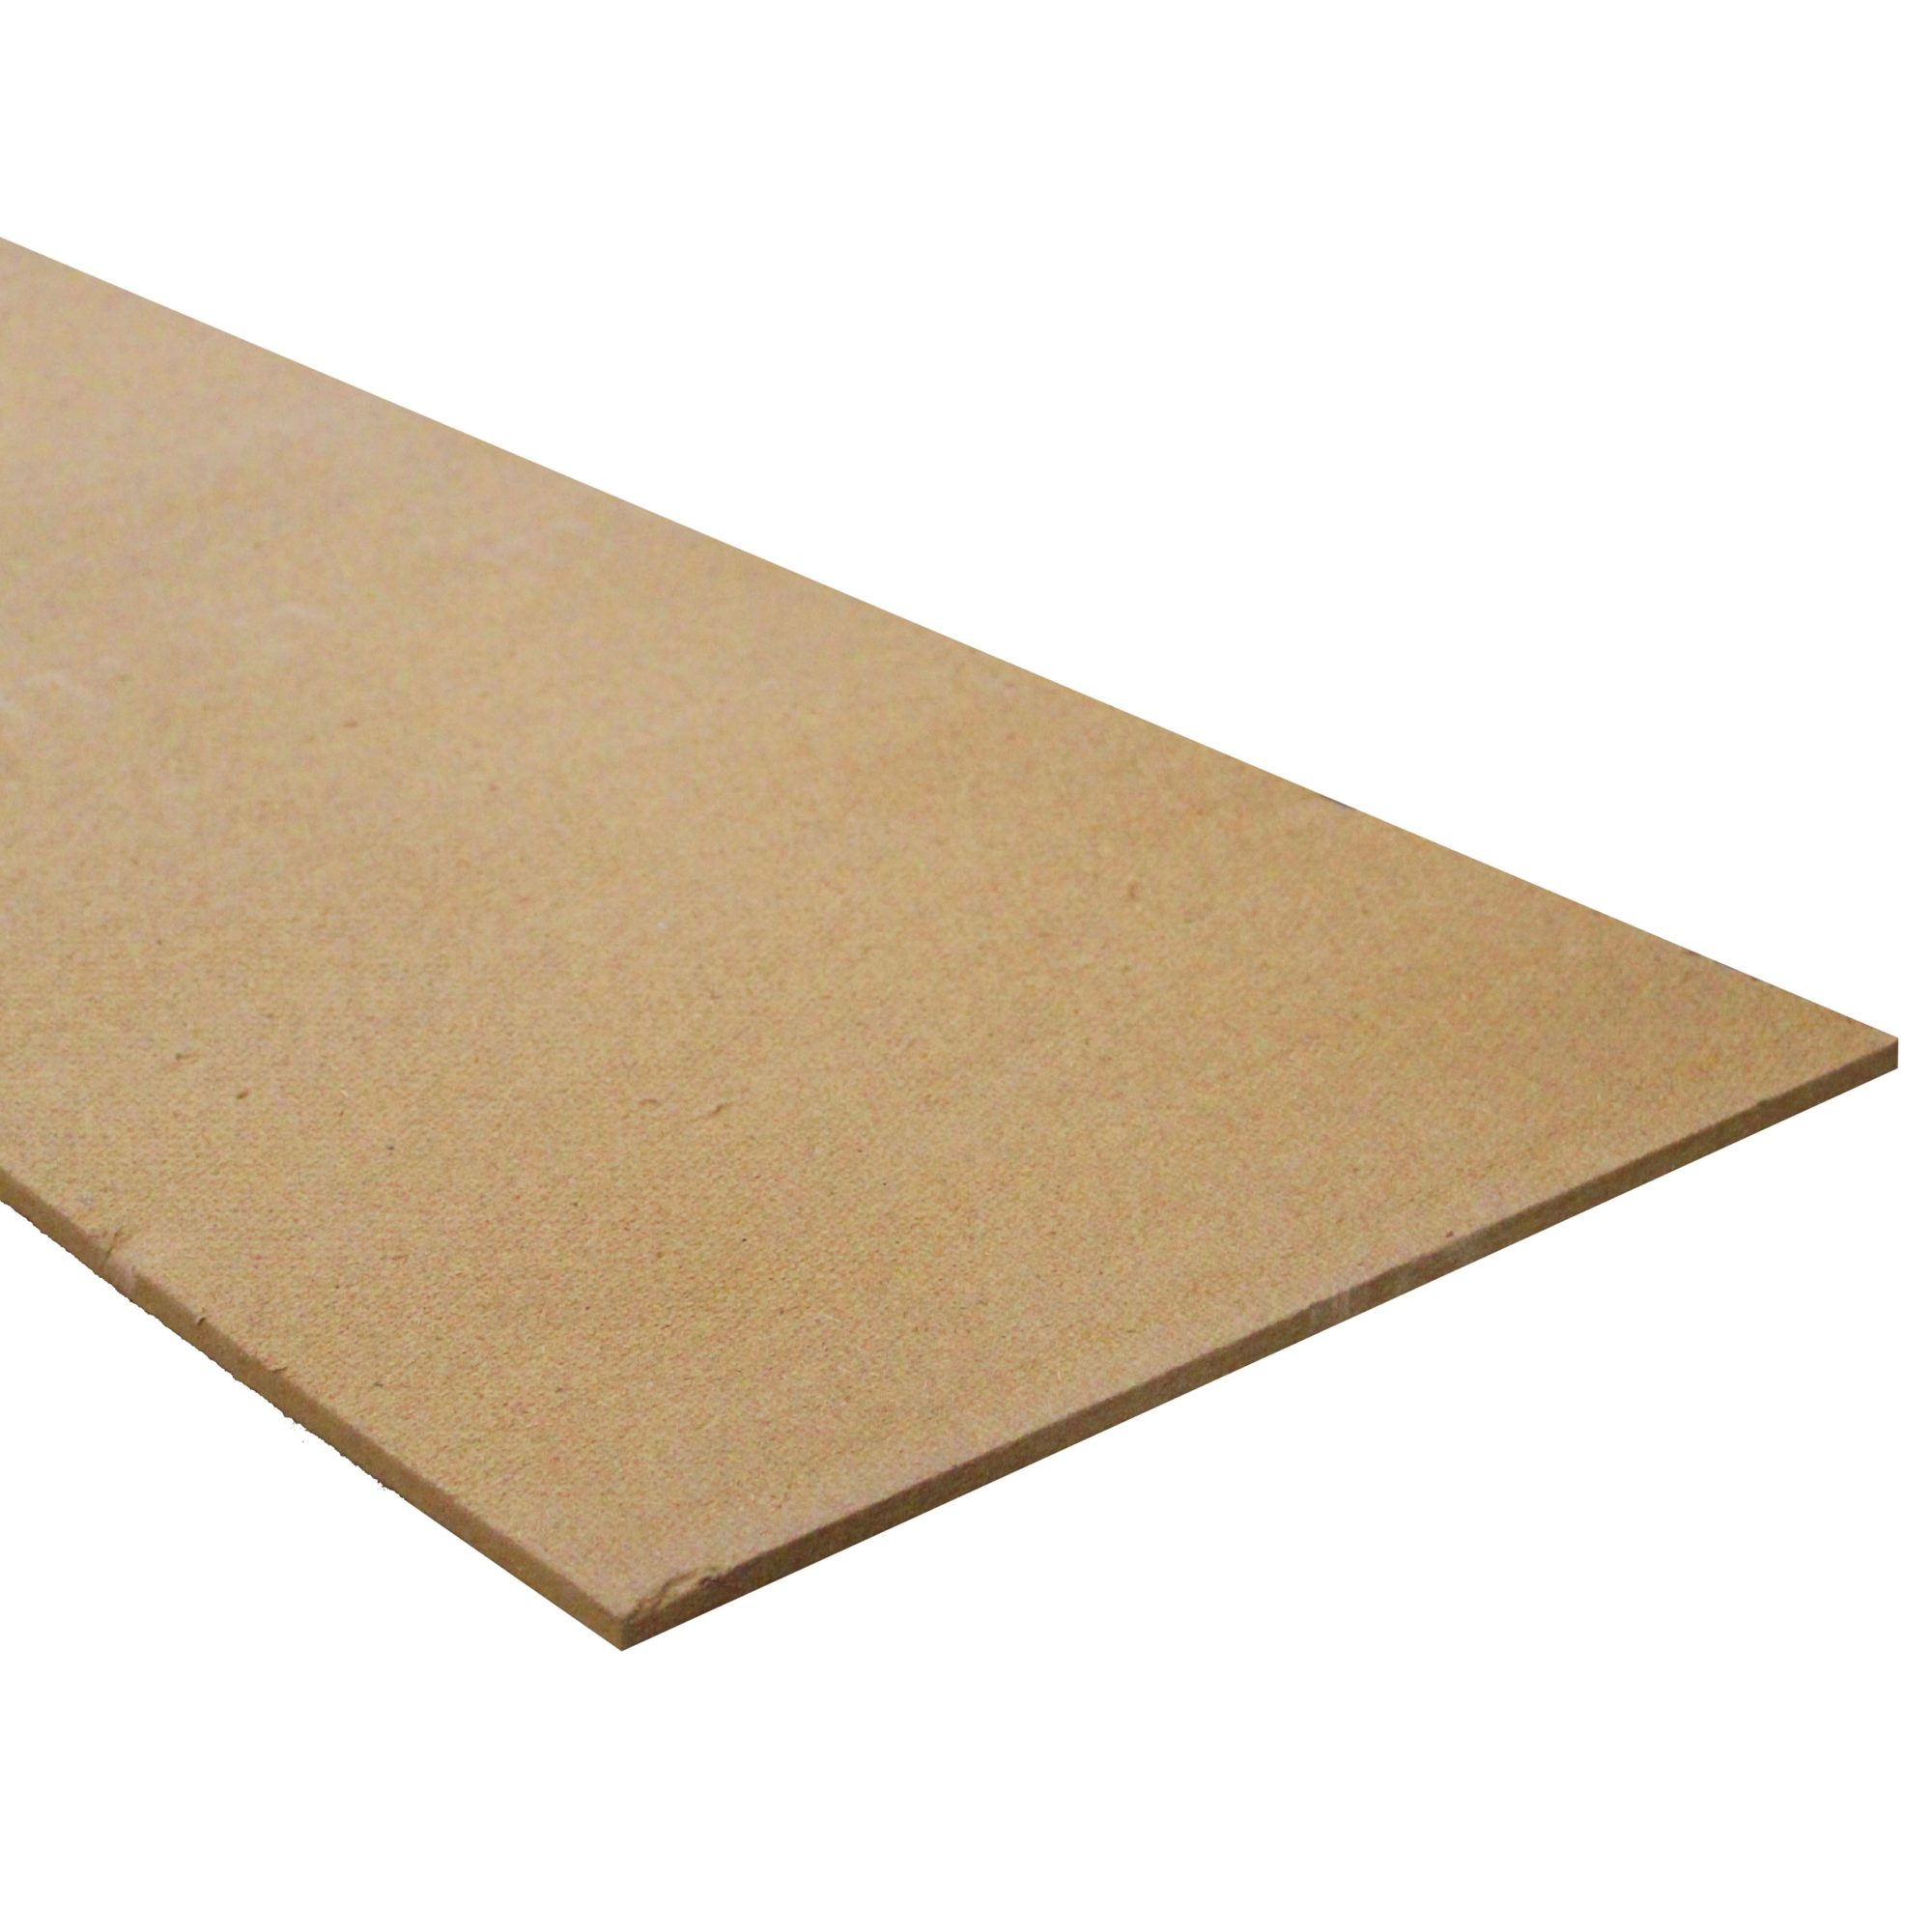 INSULATED BACKERBOARD